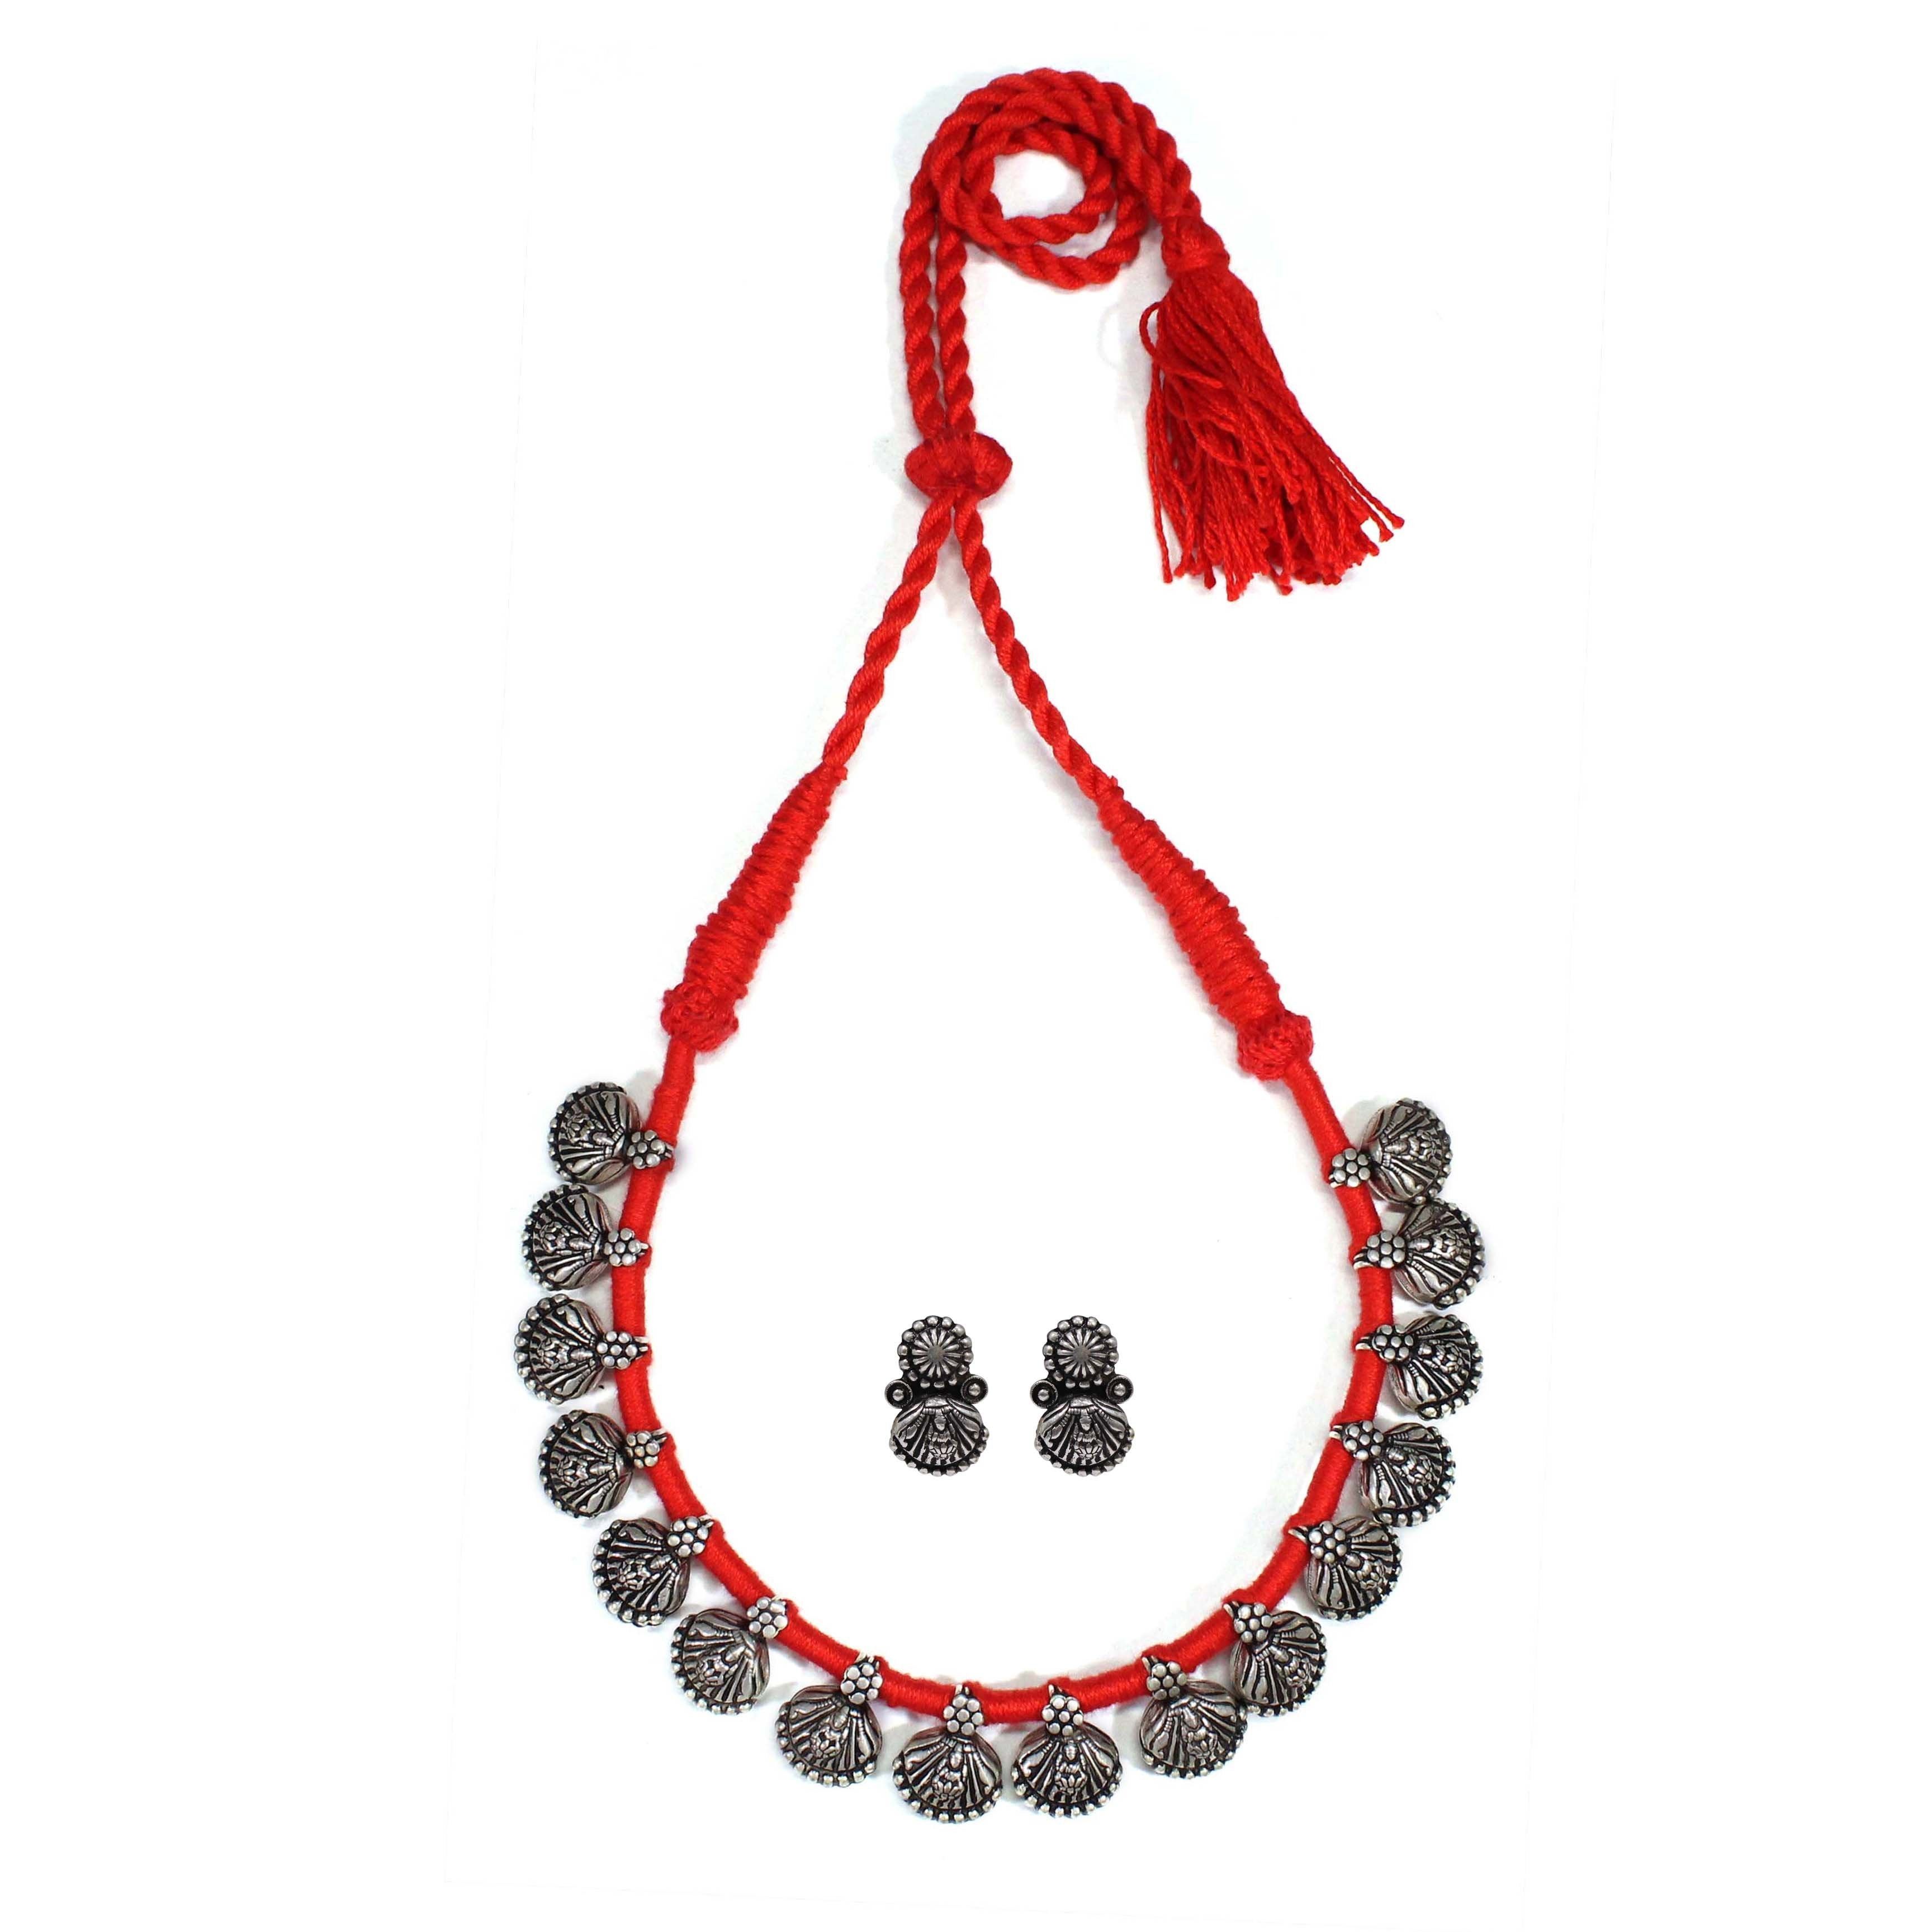 Oxidised German Silver Goddess Lakshmi Design Choker Necklace Set With Red Adjustable Dori